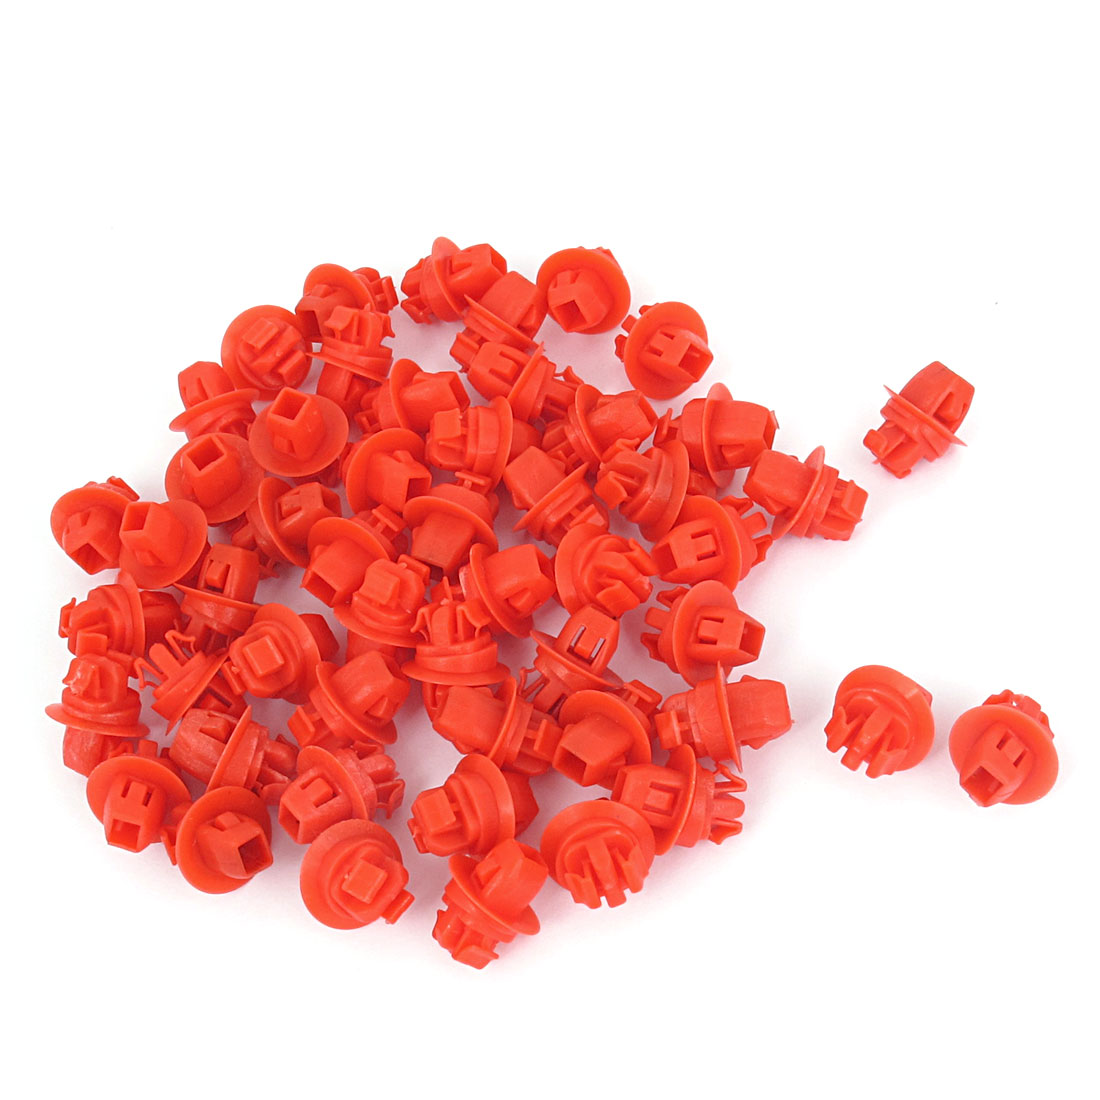 52 Pcs Red Push-Type Plastic Retainer Clips 10 x 16 x 9mm for Toyota